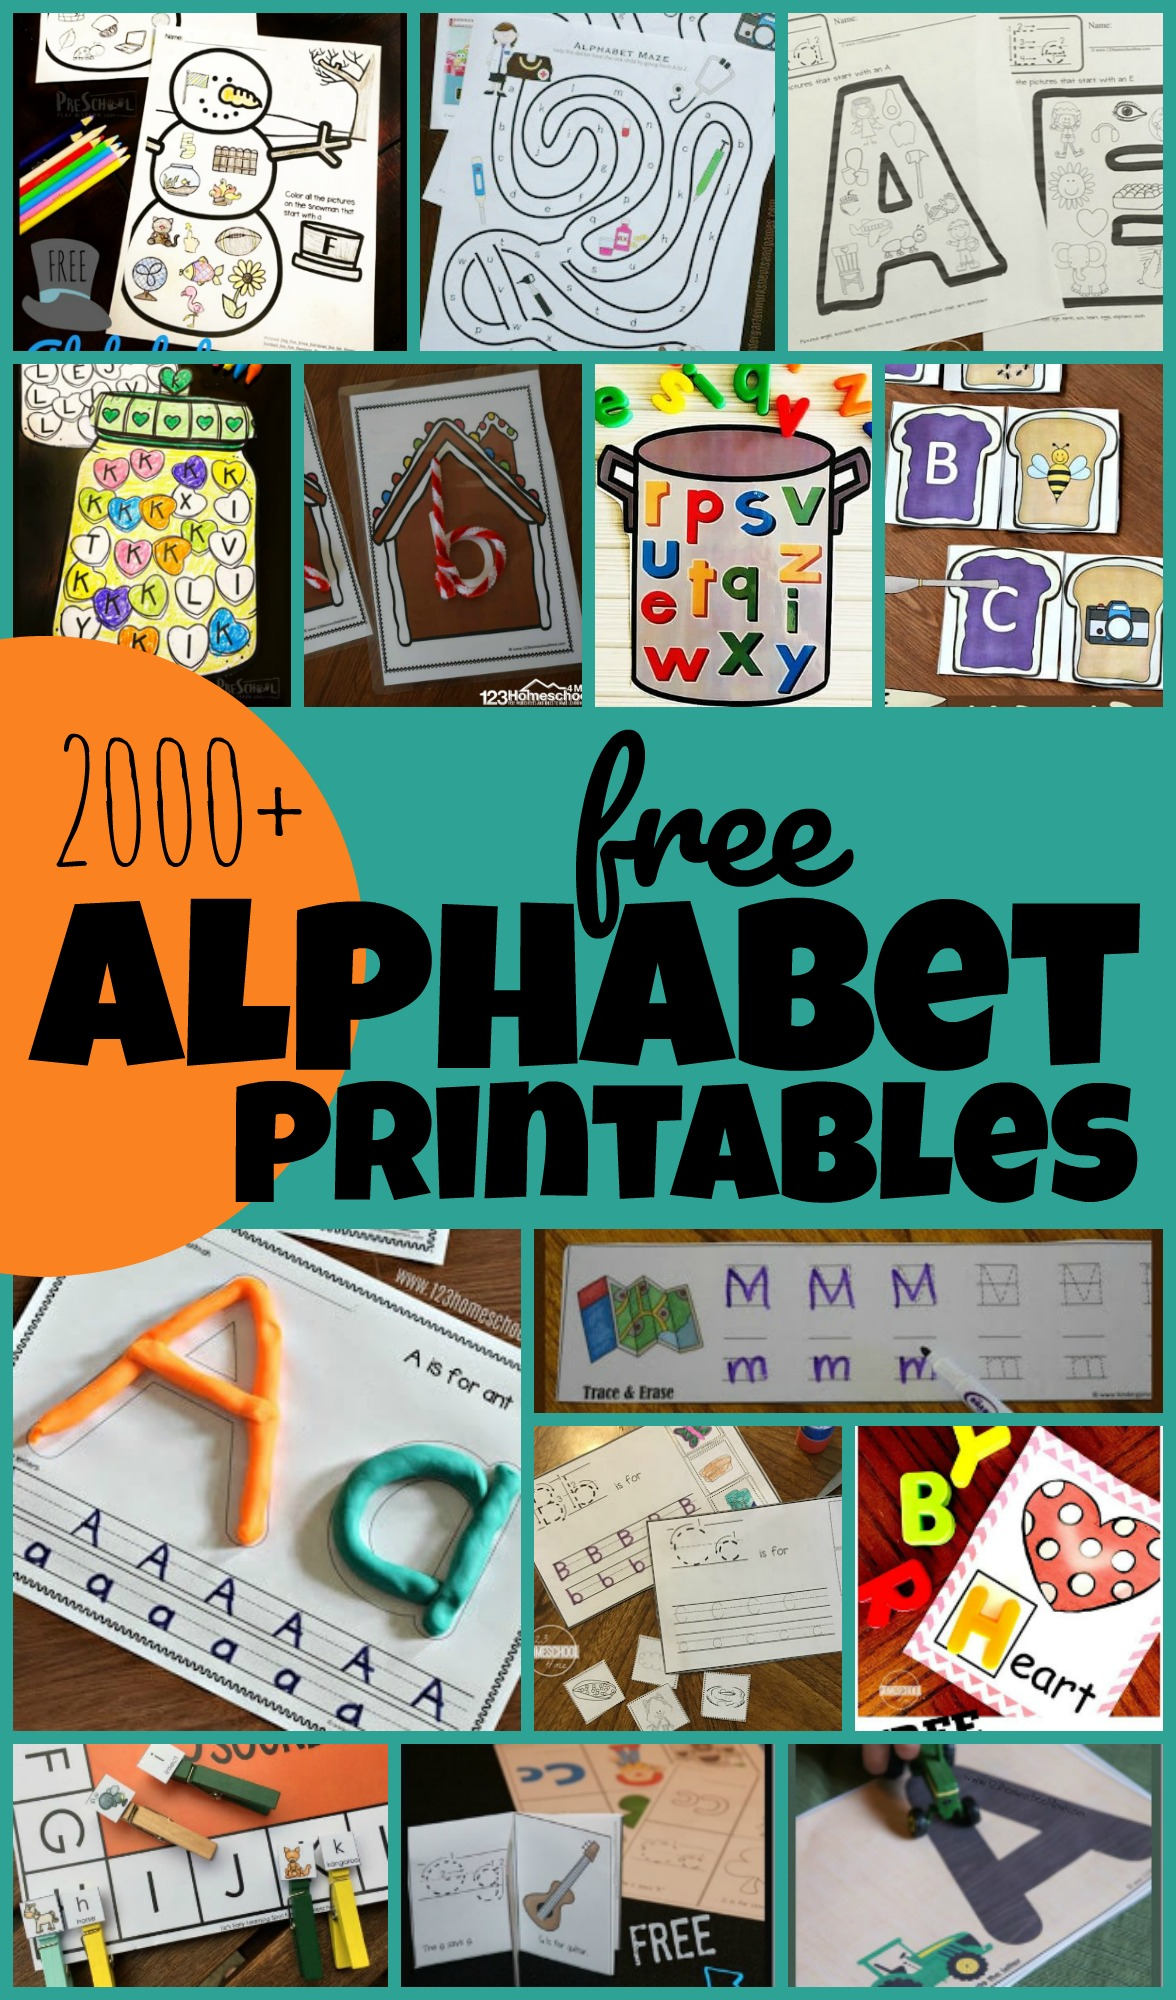 TONS of fun, clever, hands on and FREE Alphabet Printables for toddlers, preschoolers, kindergartners and students in grade 1. Includes upper and lwoercase letter matching, alphabet games, alphabet activities, letter recognition, alphabet activity, beginning sounds, phonemic awareness, coloring pages, letter tracing, alphabet crafts, and more!